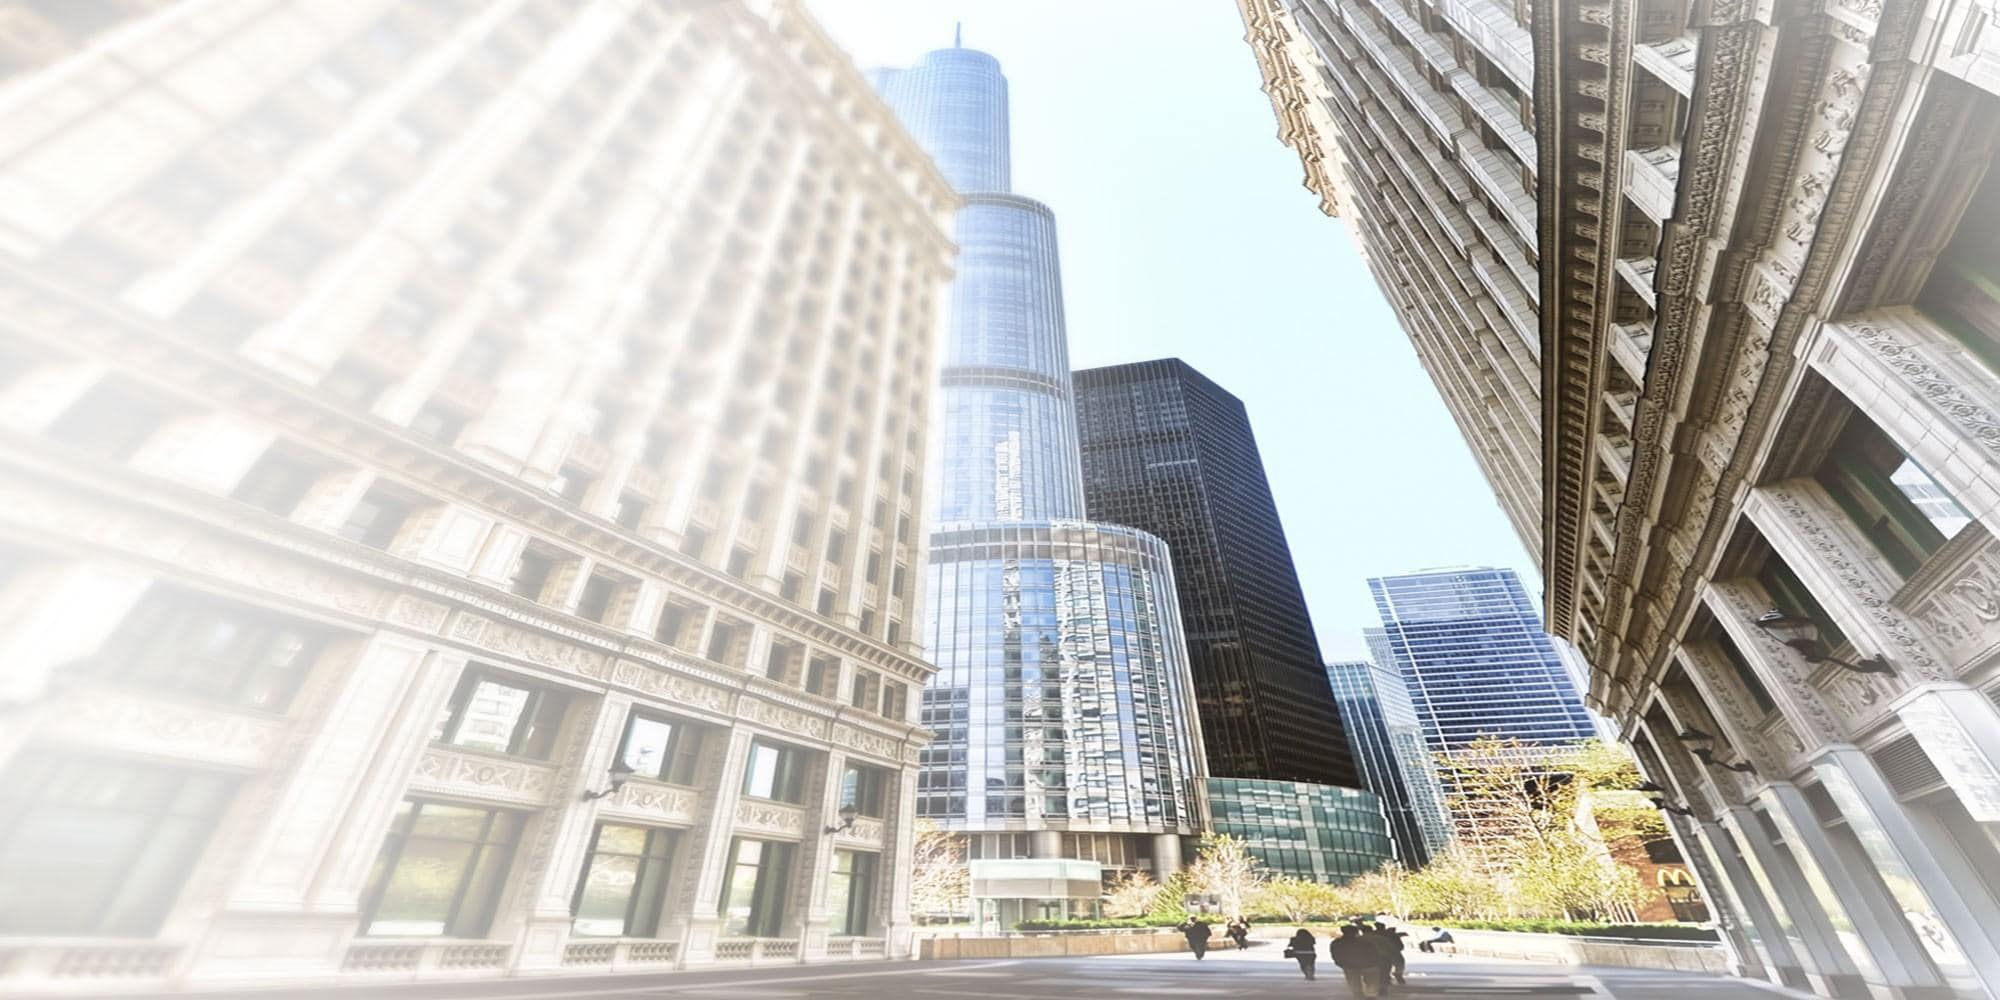 panoramic view of financial district